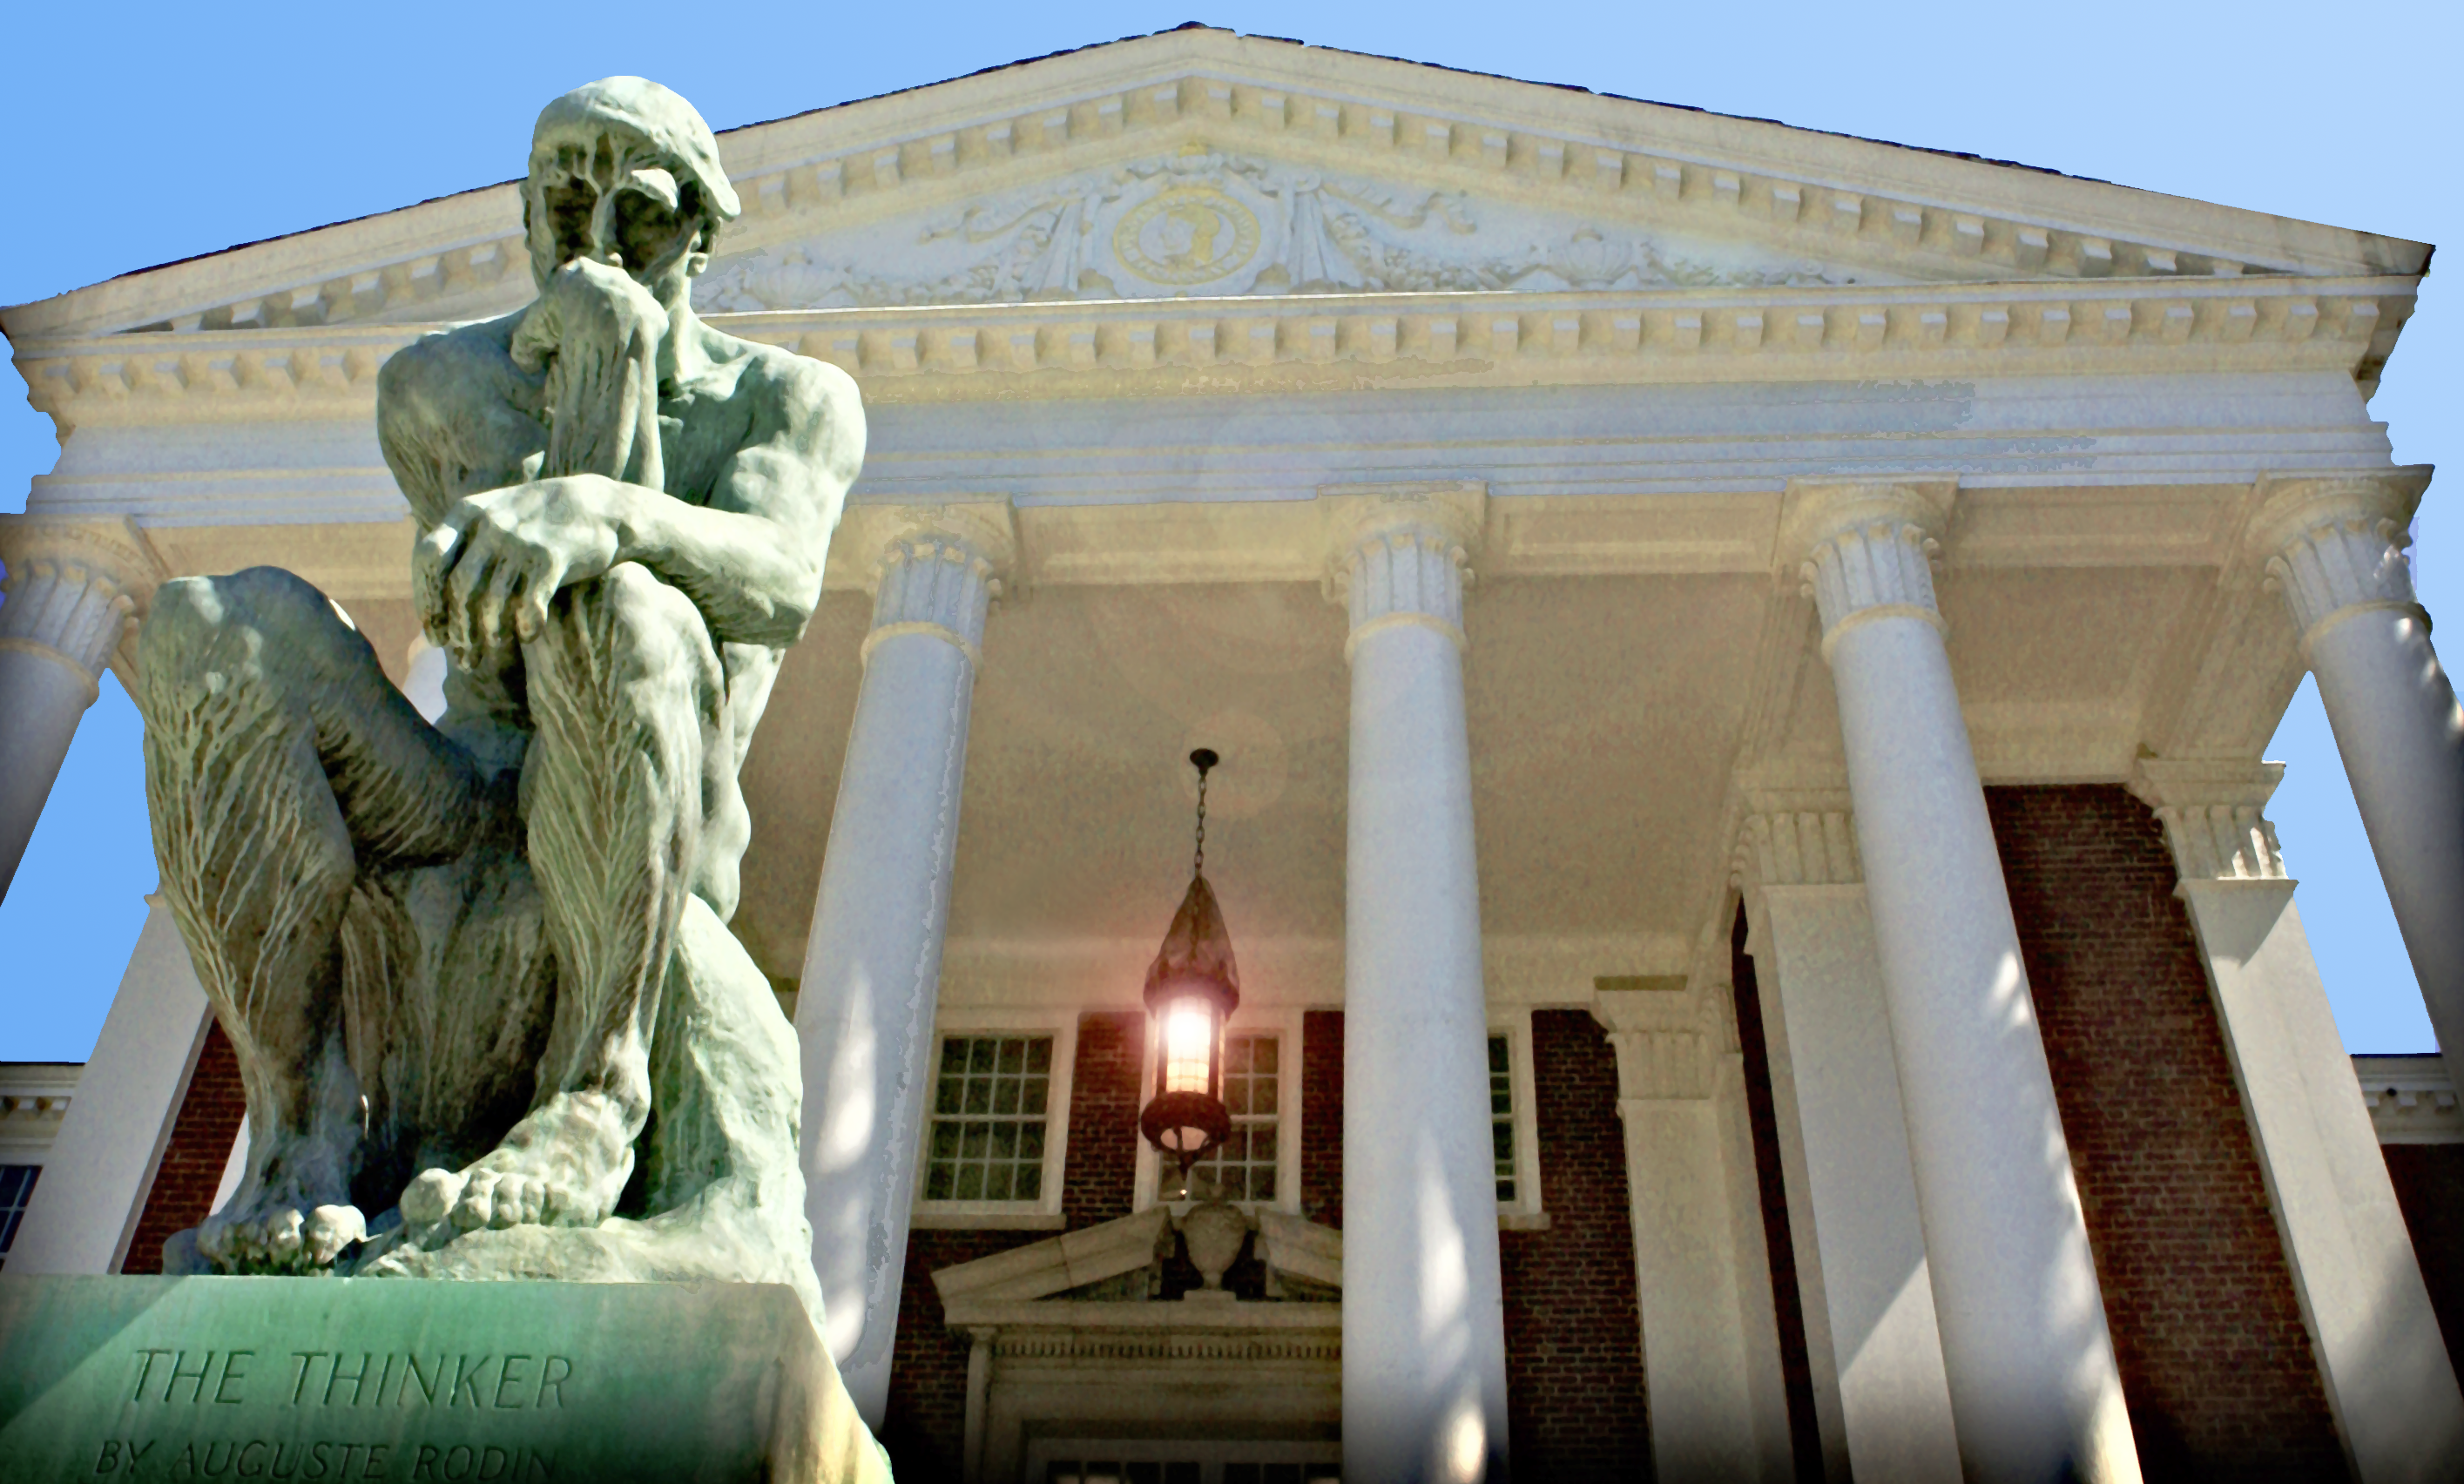 The Thinker at Grawmeyer Hall